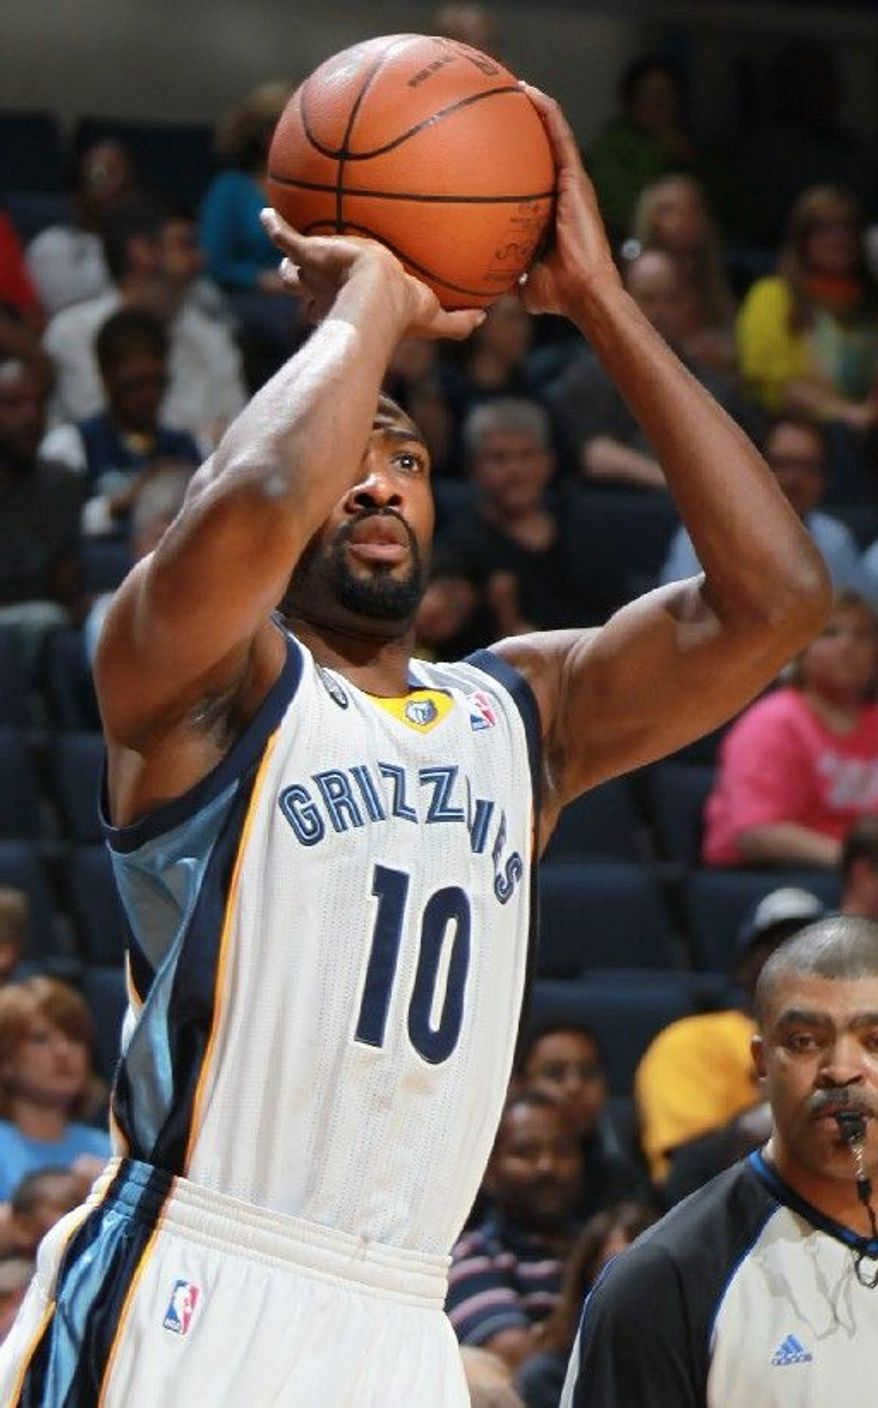 GILBERT ARENAS: Signed to a six-year, $110 million free agent contract in 2003, he quickly became a fan favorite in part because of his quirky personality. Arenas' tenure in Washington unraveled after he was convicted of felony gun possession. (Associated Press)